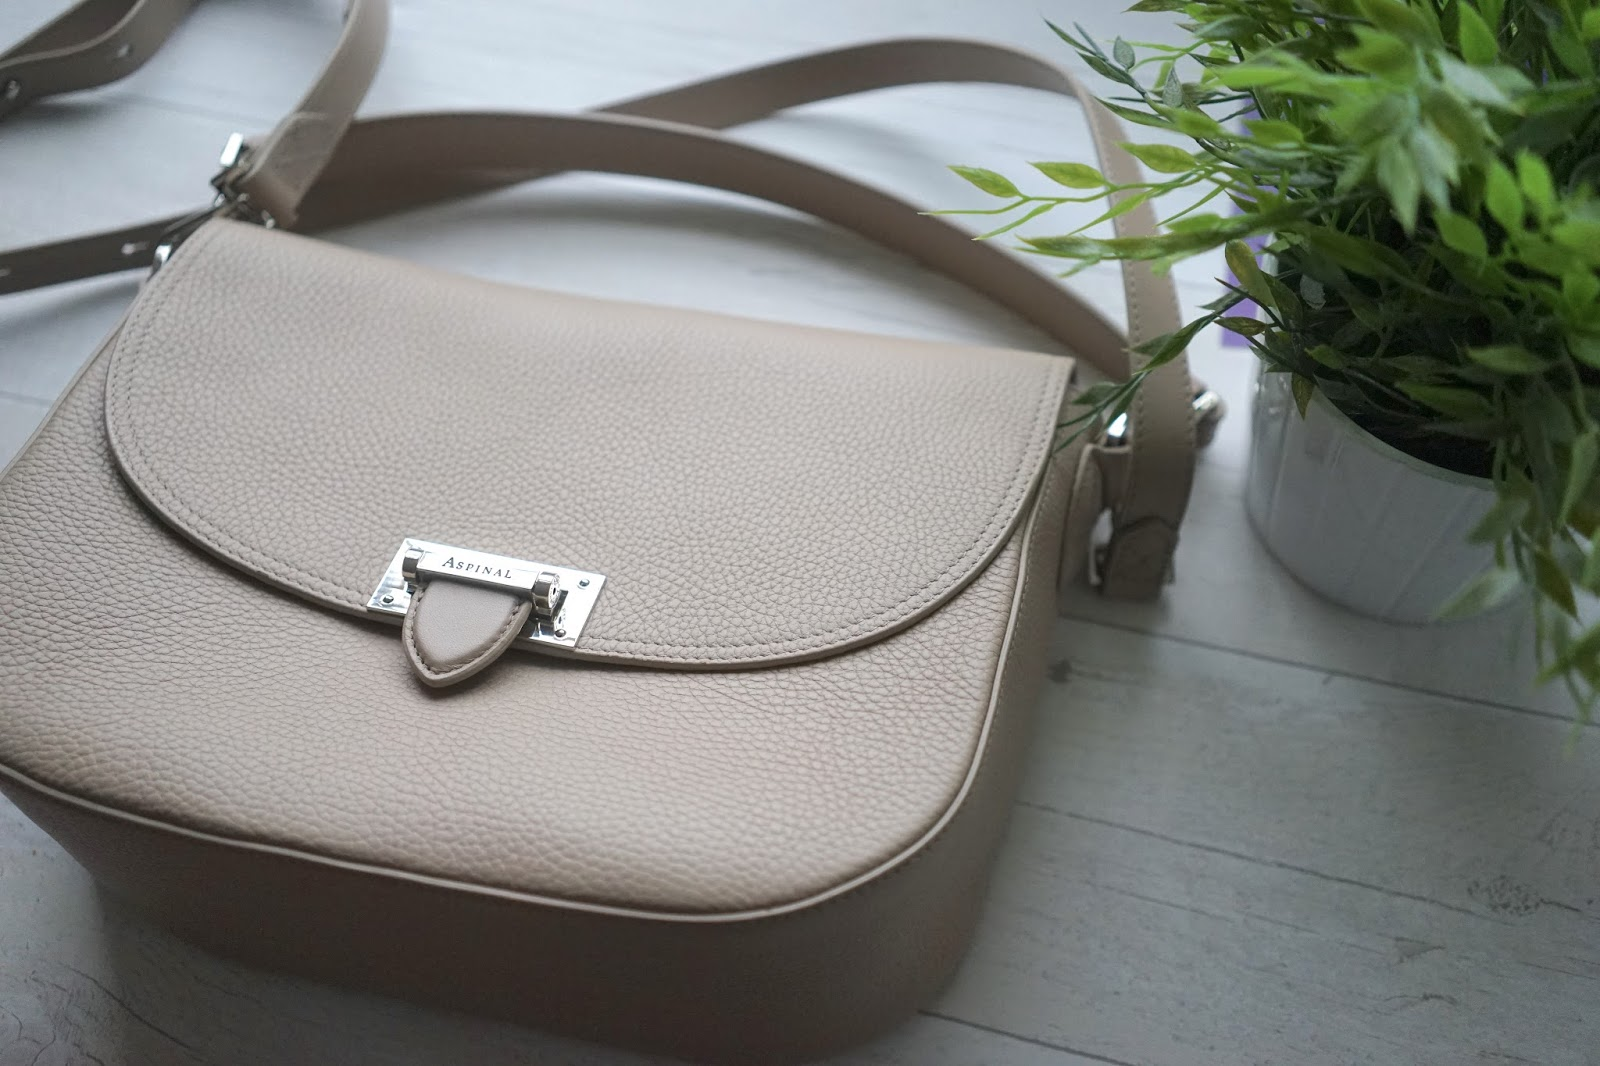 The Letterbox Slouchy Saddle Bag